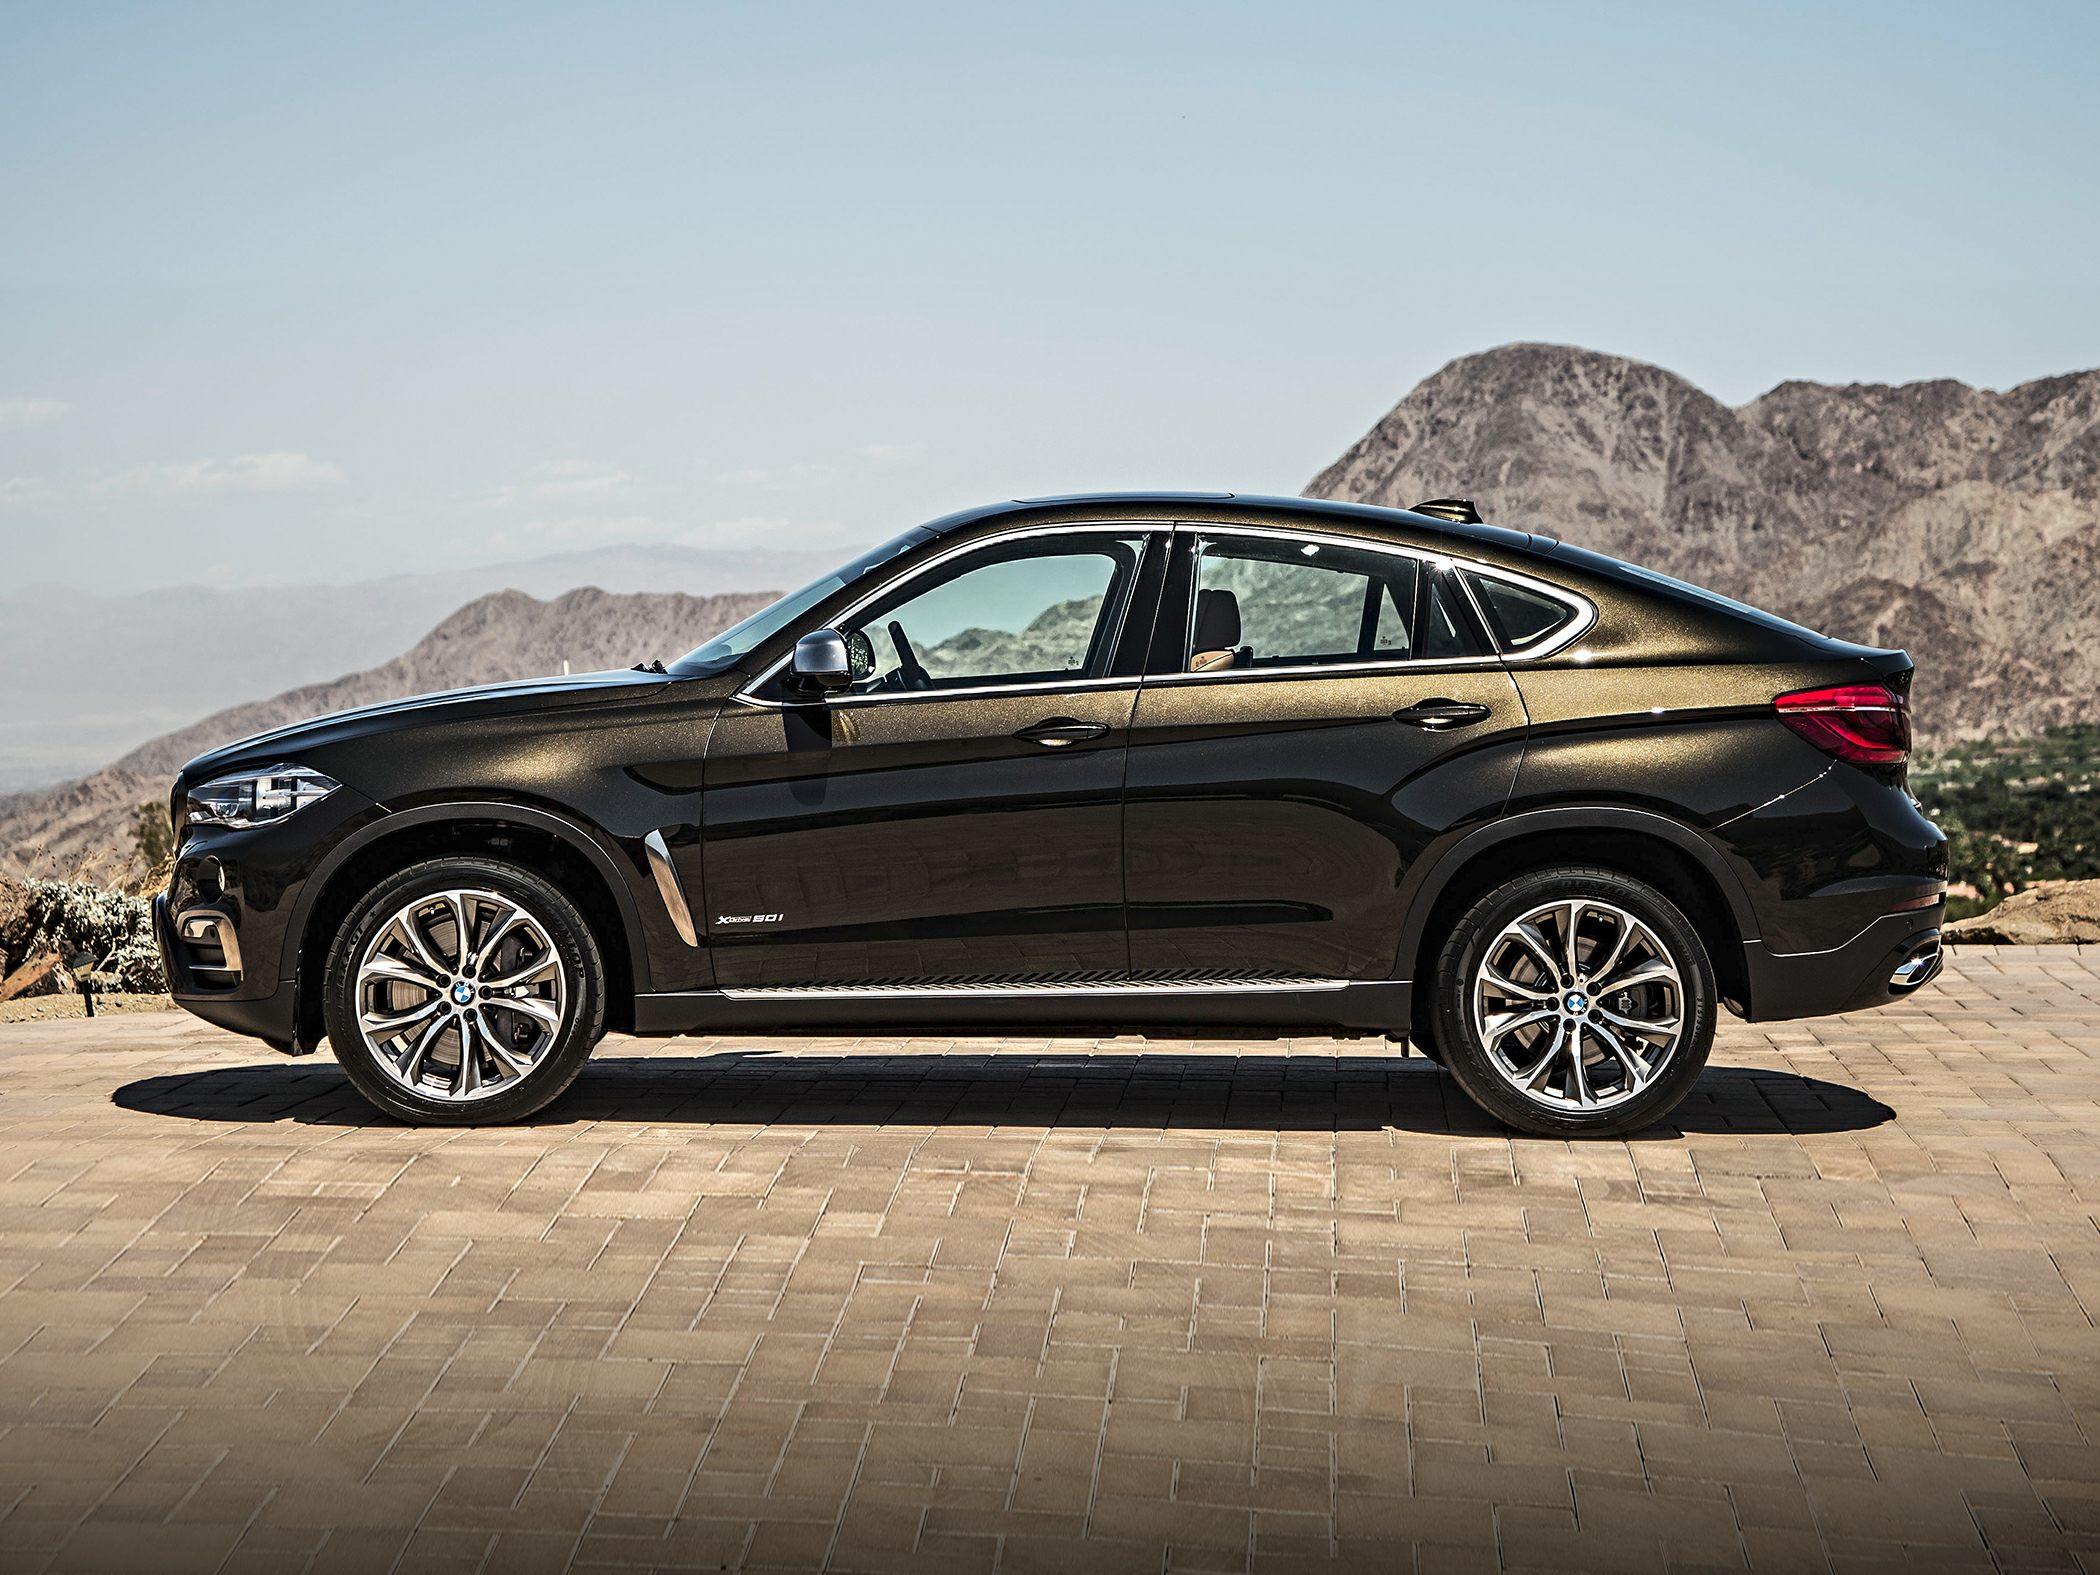 2017 bmw x6 deals prices incentives leases overview carsdirect. Black Bedroom Furniture Sets. Home Design Ideas